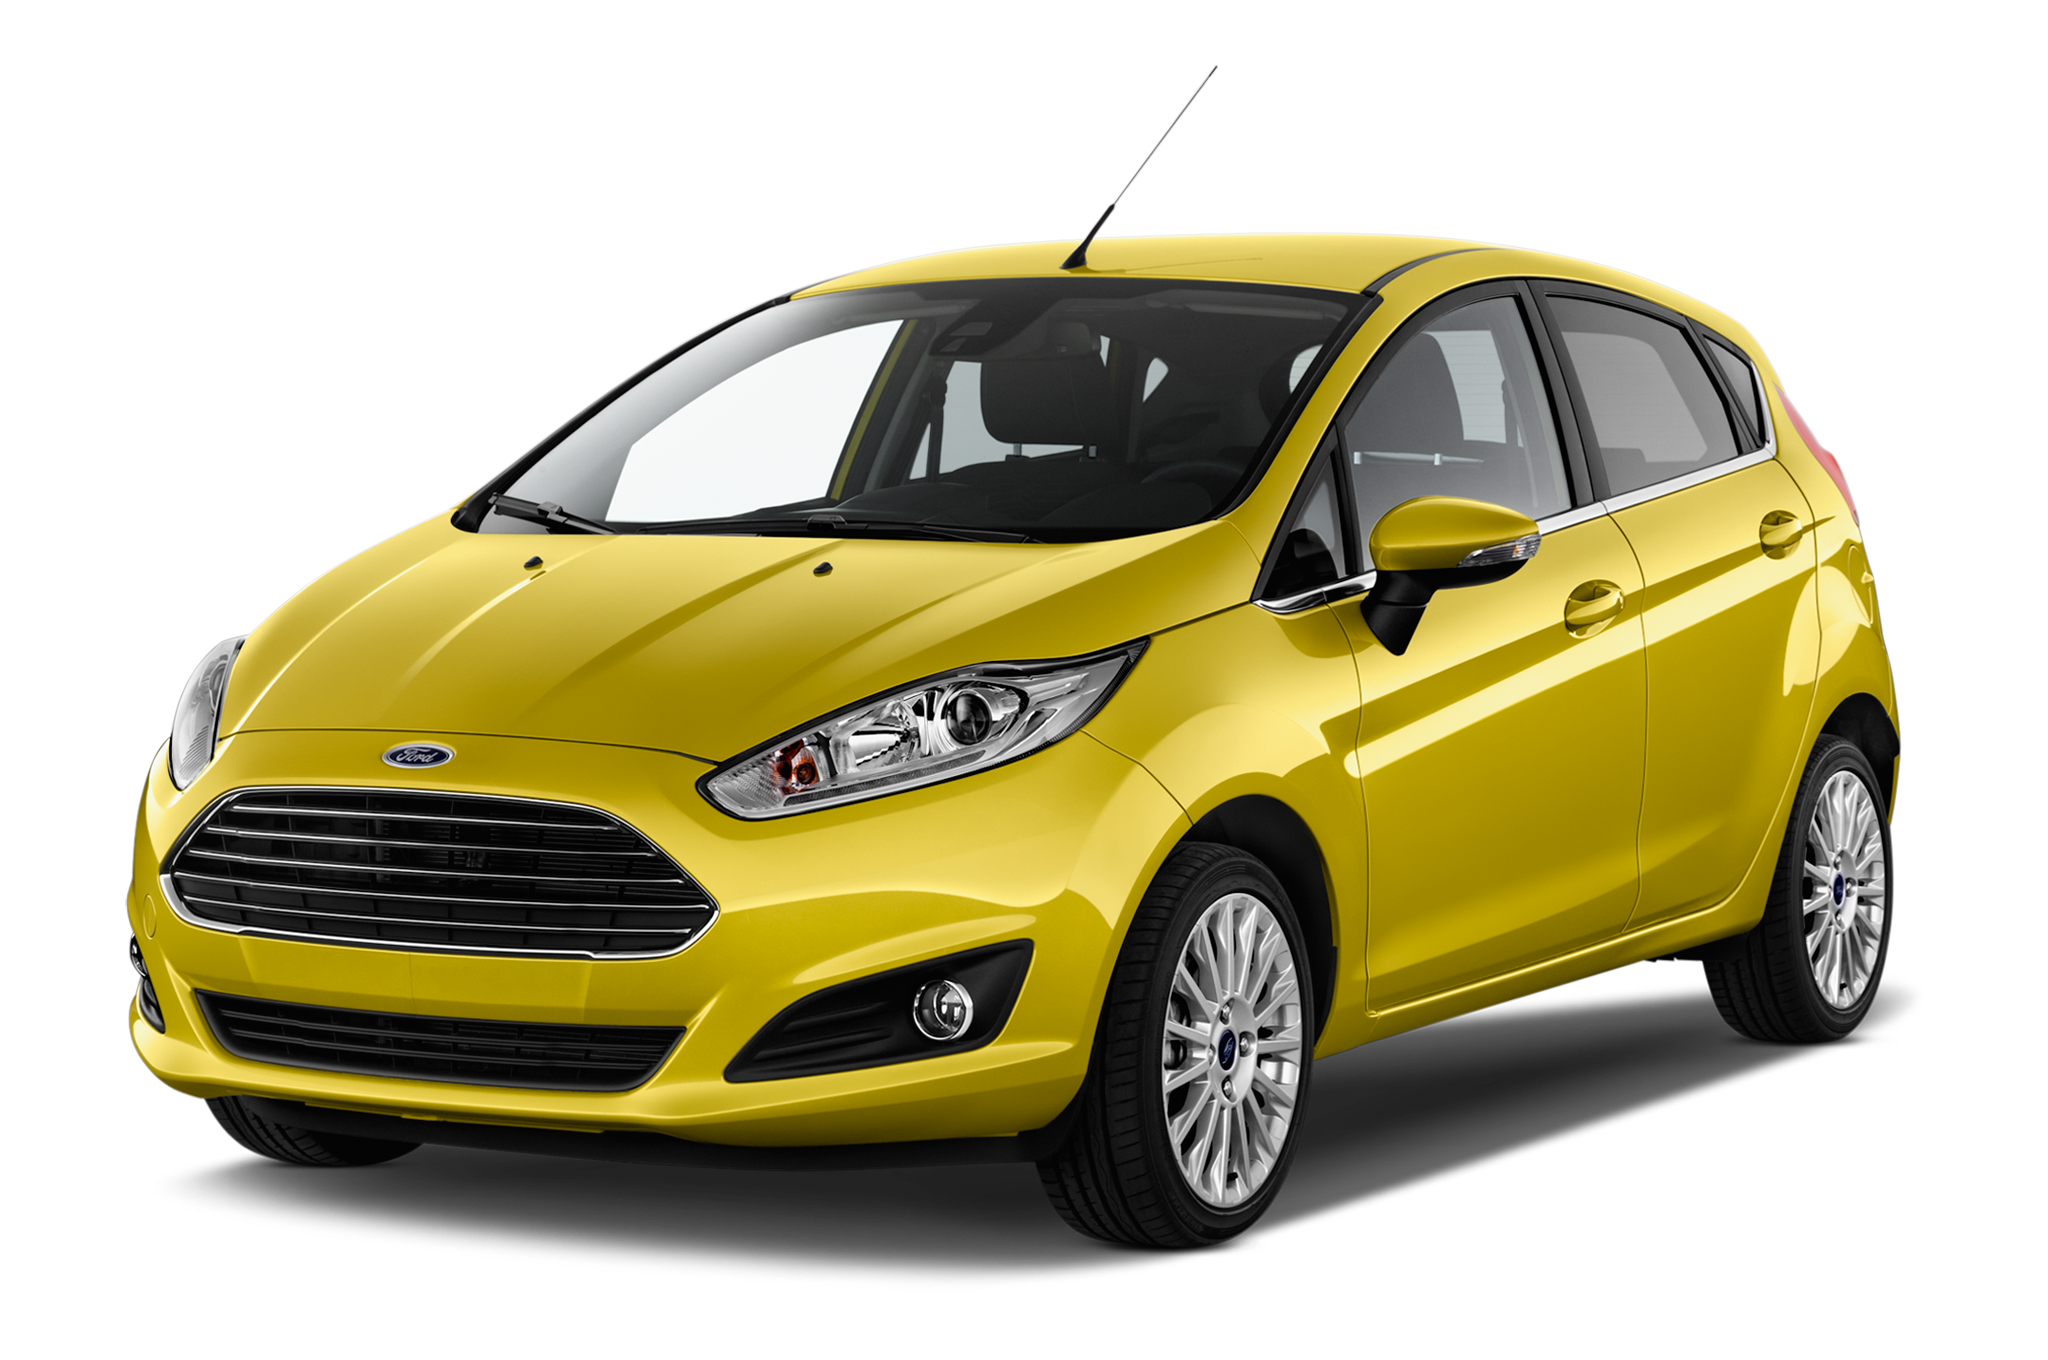 uploads ford ford PNG12210 3